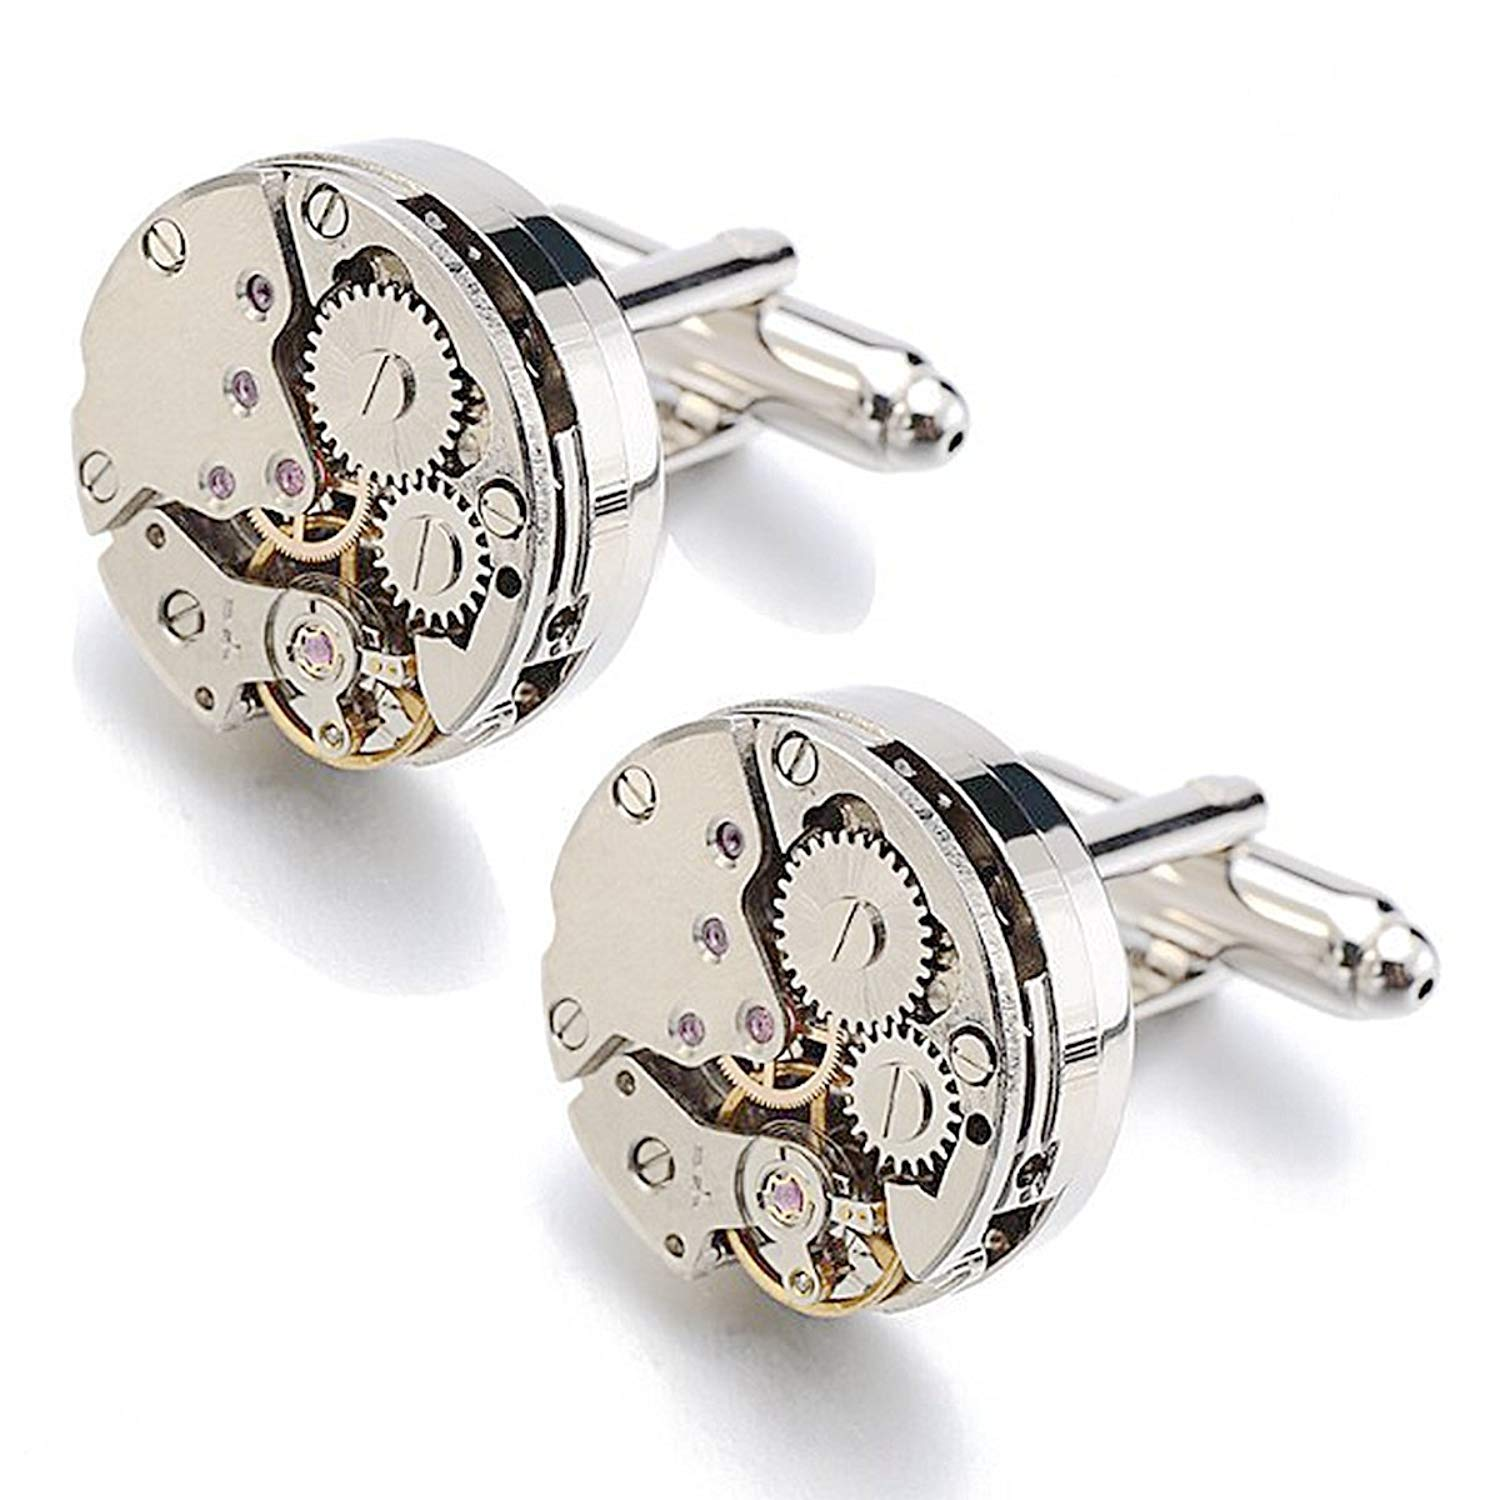 RXBC2011 Upgraded Version Deluxe Steampunk Watch Mens Vintage Watch Movement Shape Cufflinks Come in an Elegant Storage Display Box (with GIFTBOX)